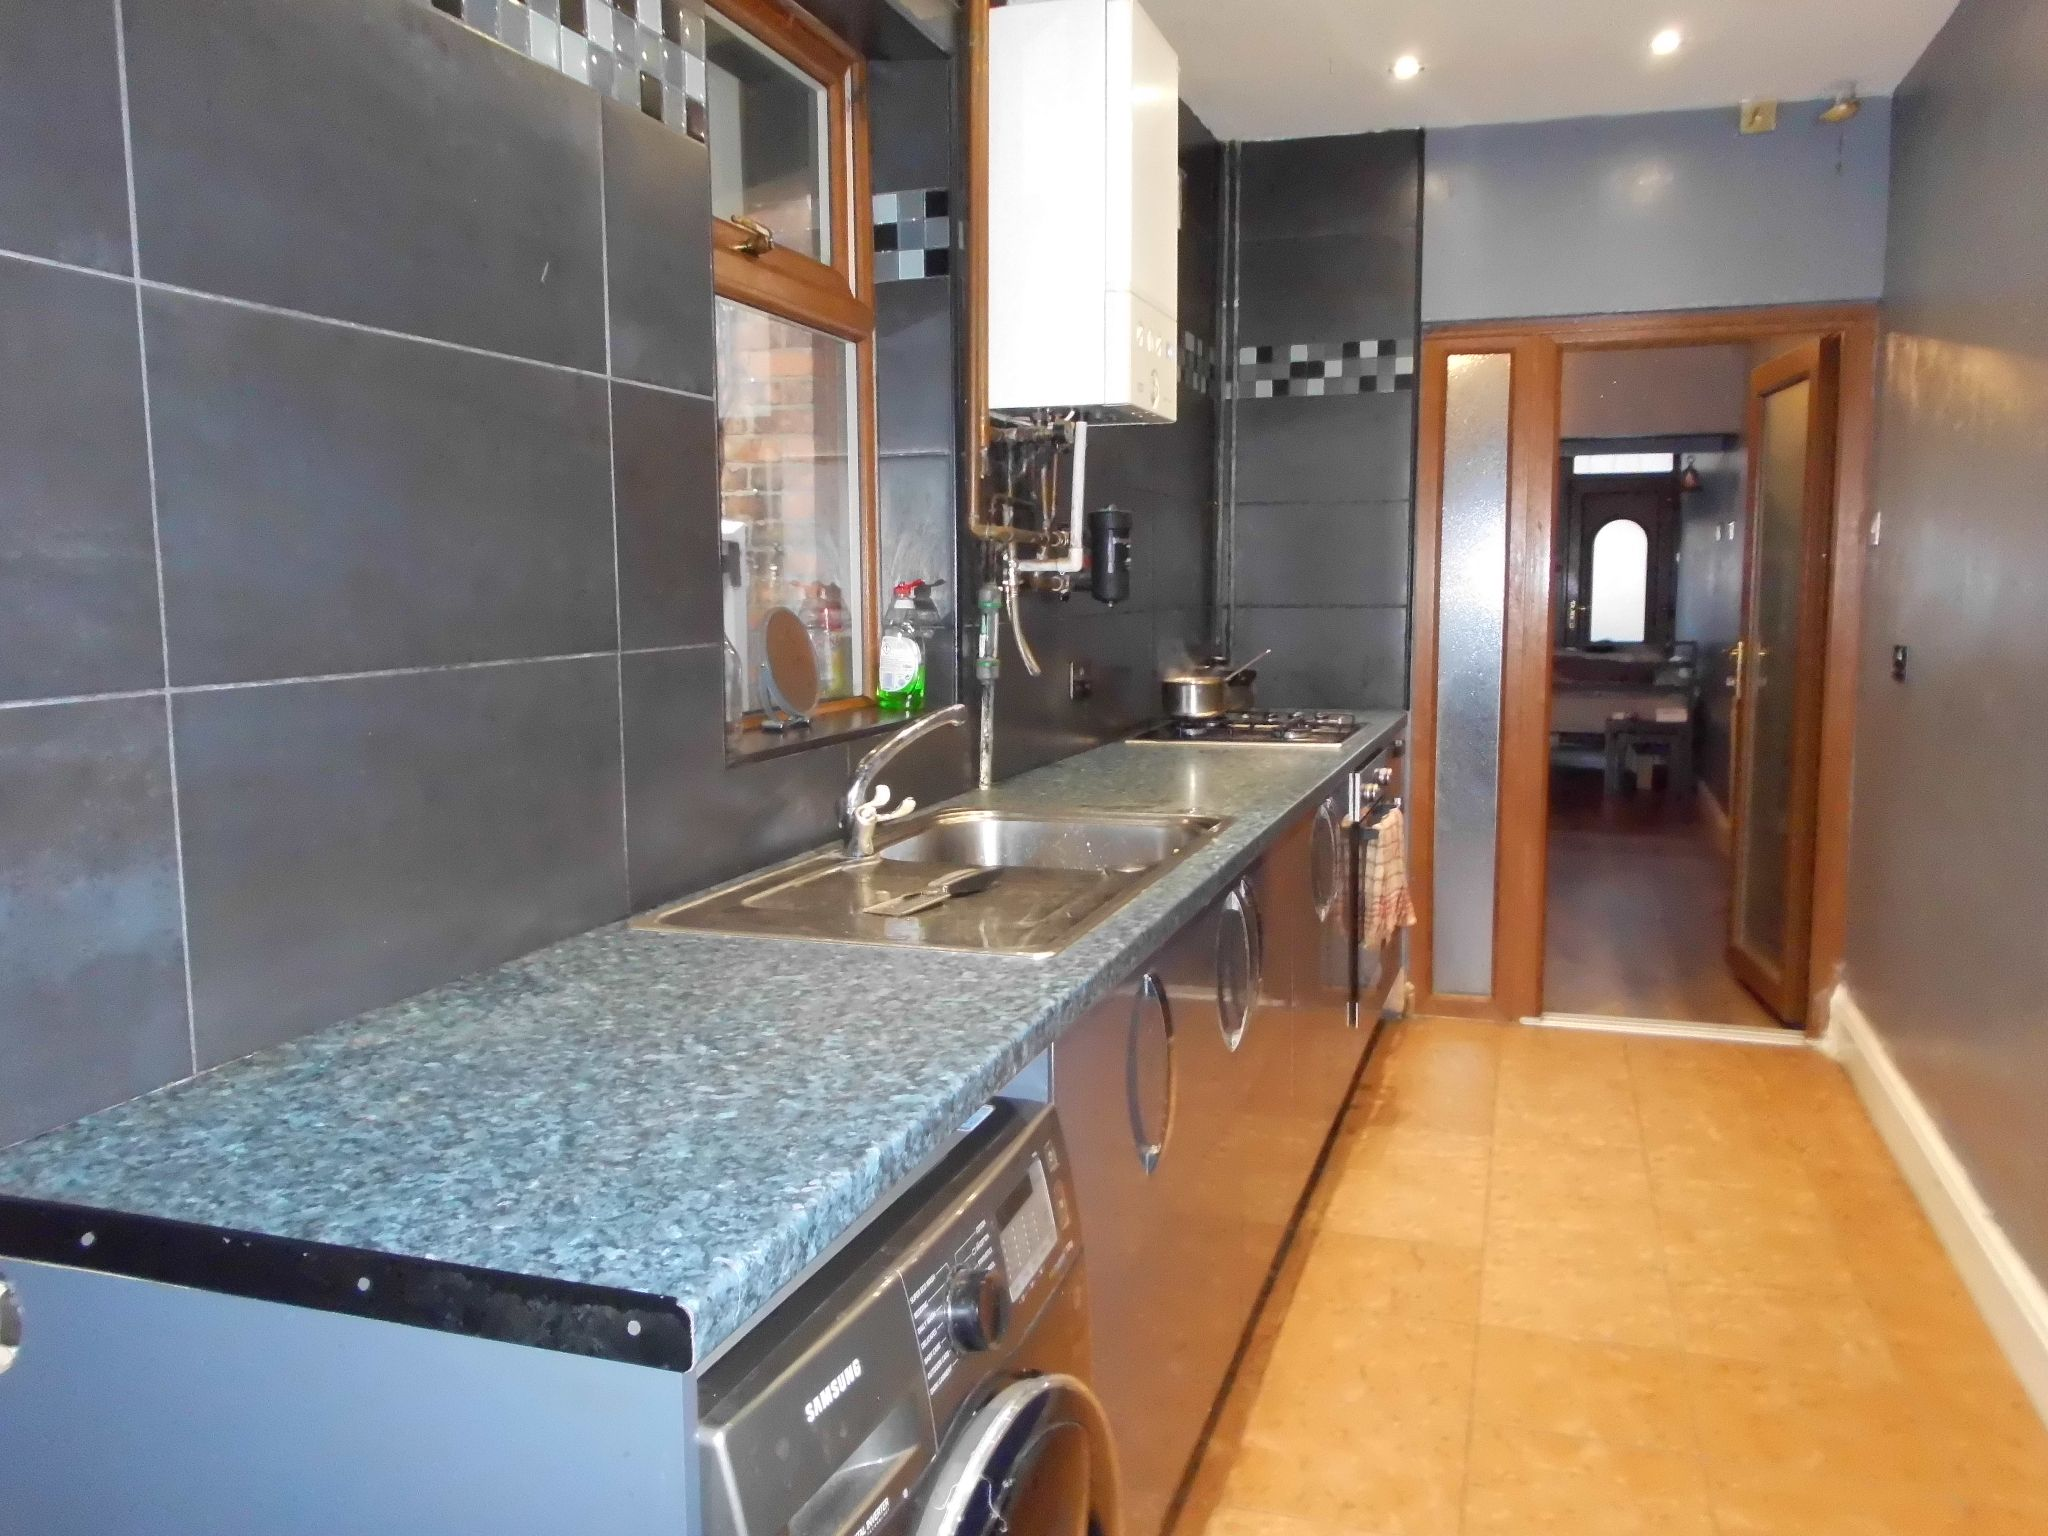 3 Bedroom Mid Terraced House For Sale 41 Weymouth Street Image 4